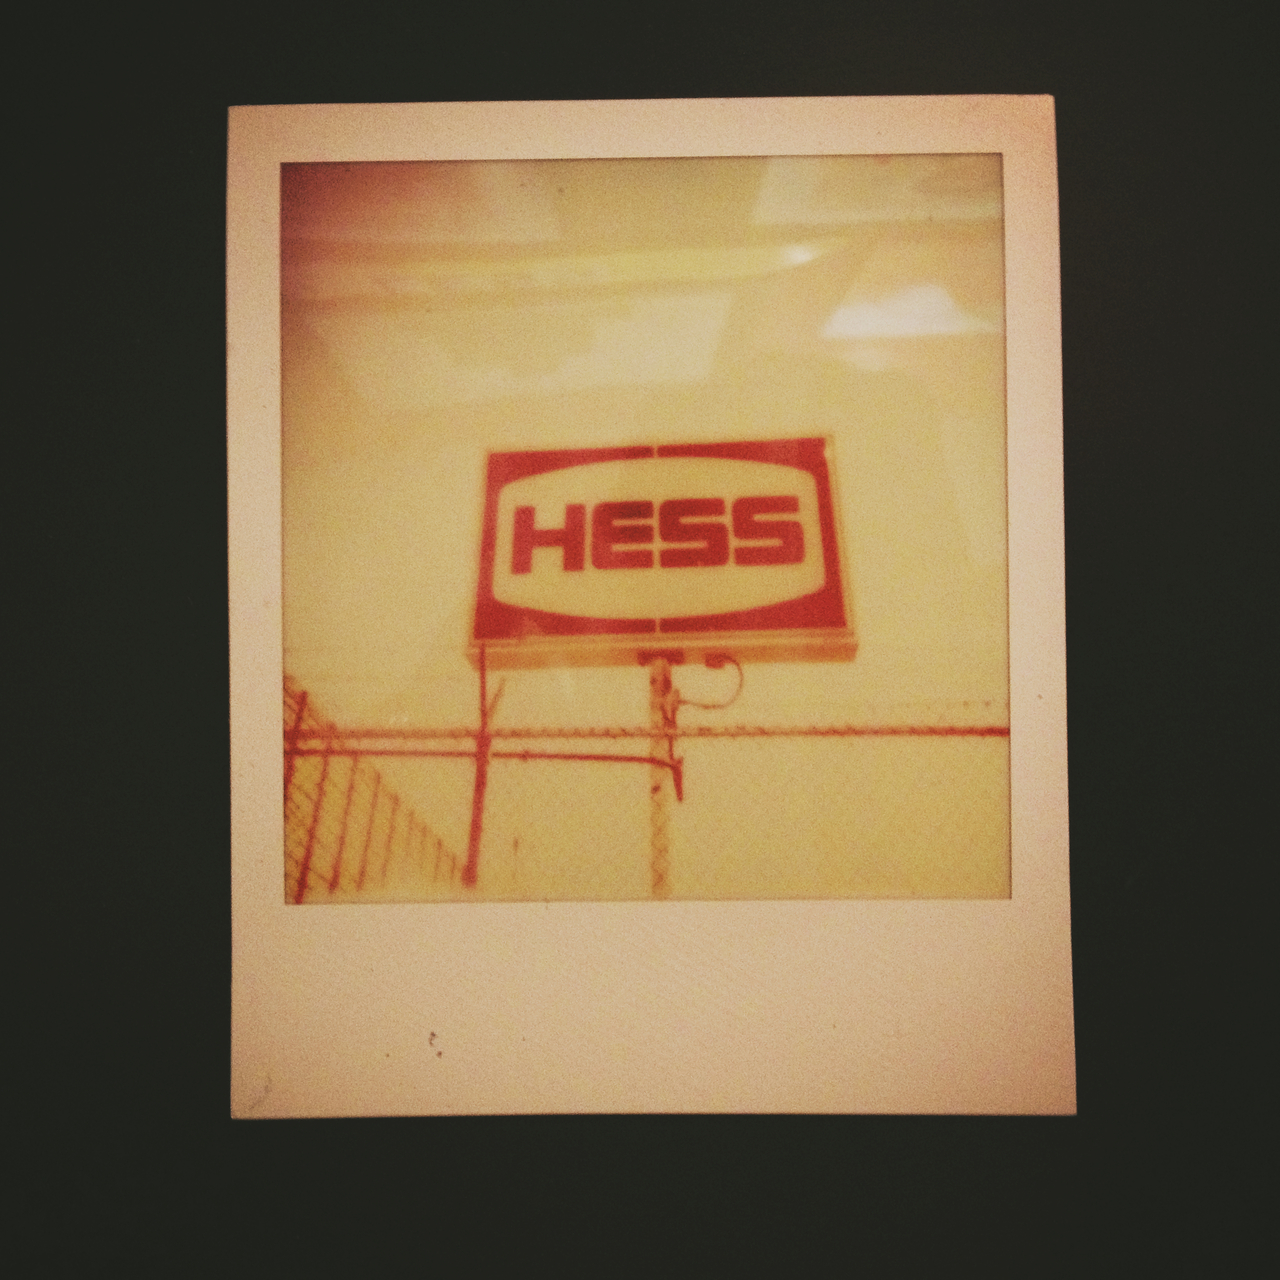 Hess Behind Gate - #pepper #peppersearching #signage #type #logo #redhook #gate #brooklyn #design #nofilter #polaroid